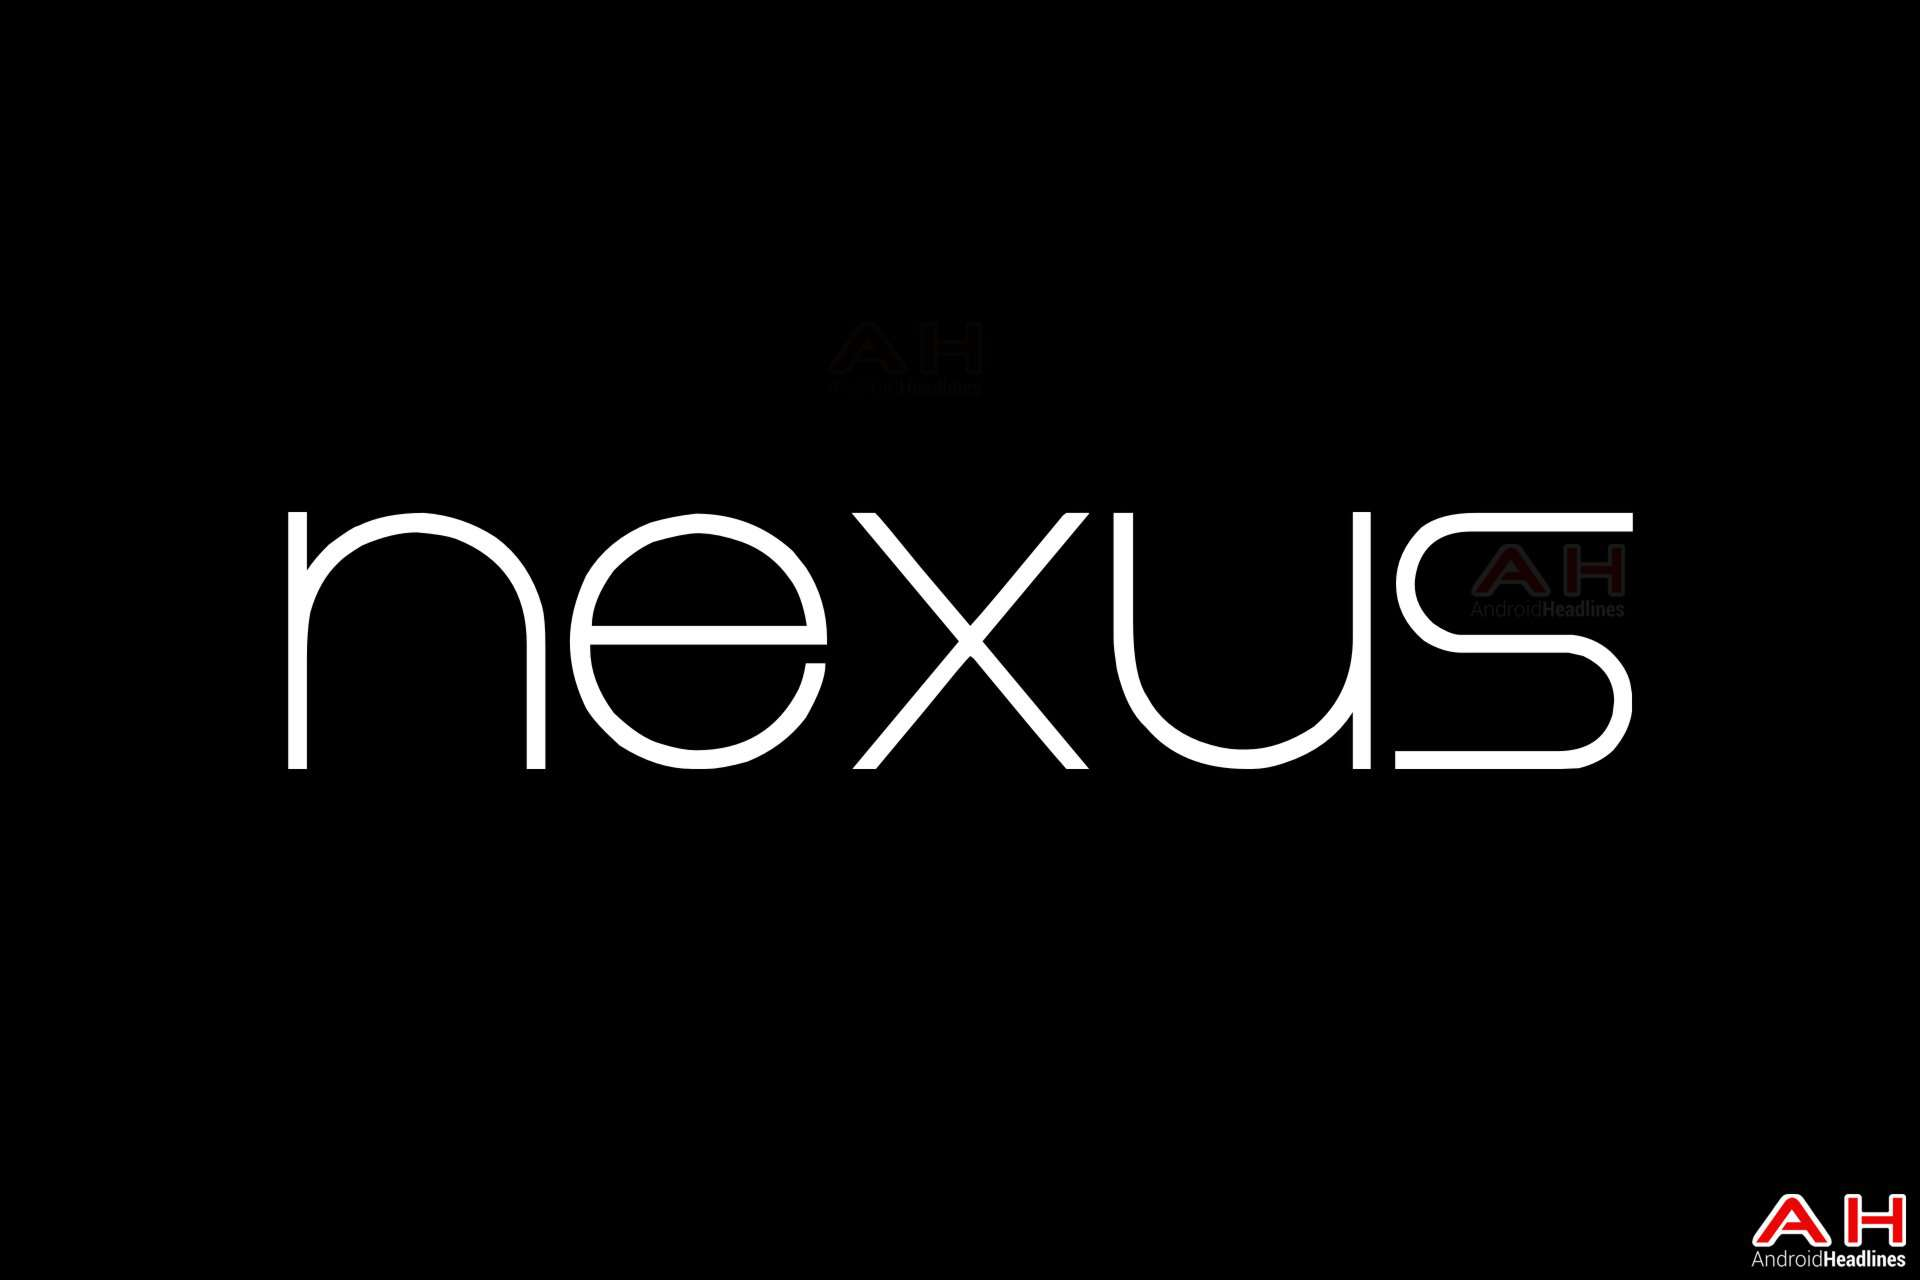 nexus dating service Tvguide has every full episode so you can stay-up-to-date and watch your favorite show total recall 2070 anytime murders at the nexus dating service moralez.